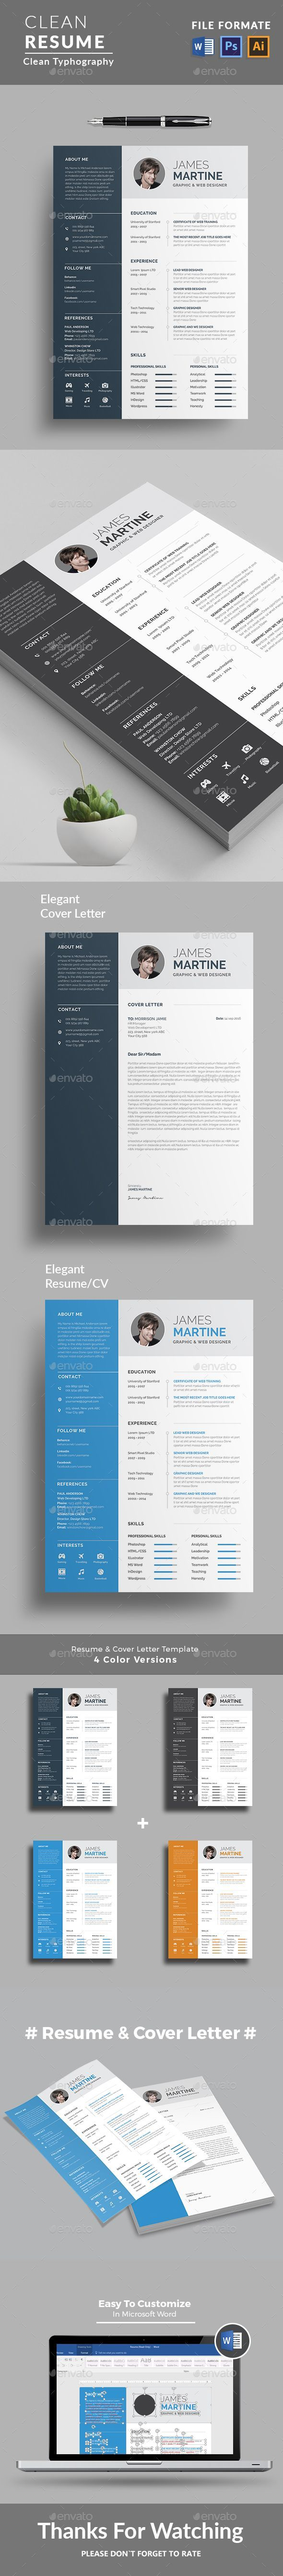 #Resume - Resumes Stationery Download here: https://graphicriver.net/item/resume/19276022?ref=alena994